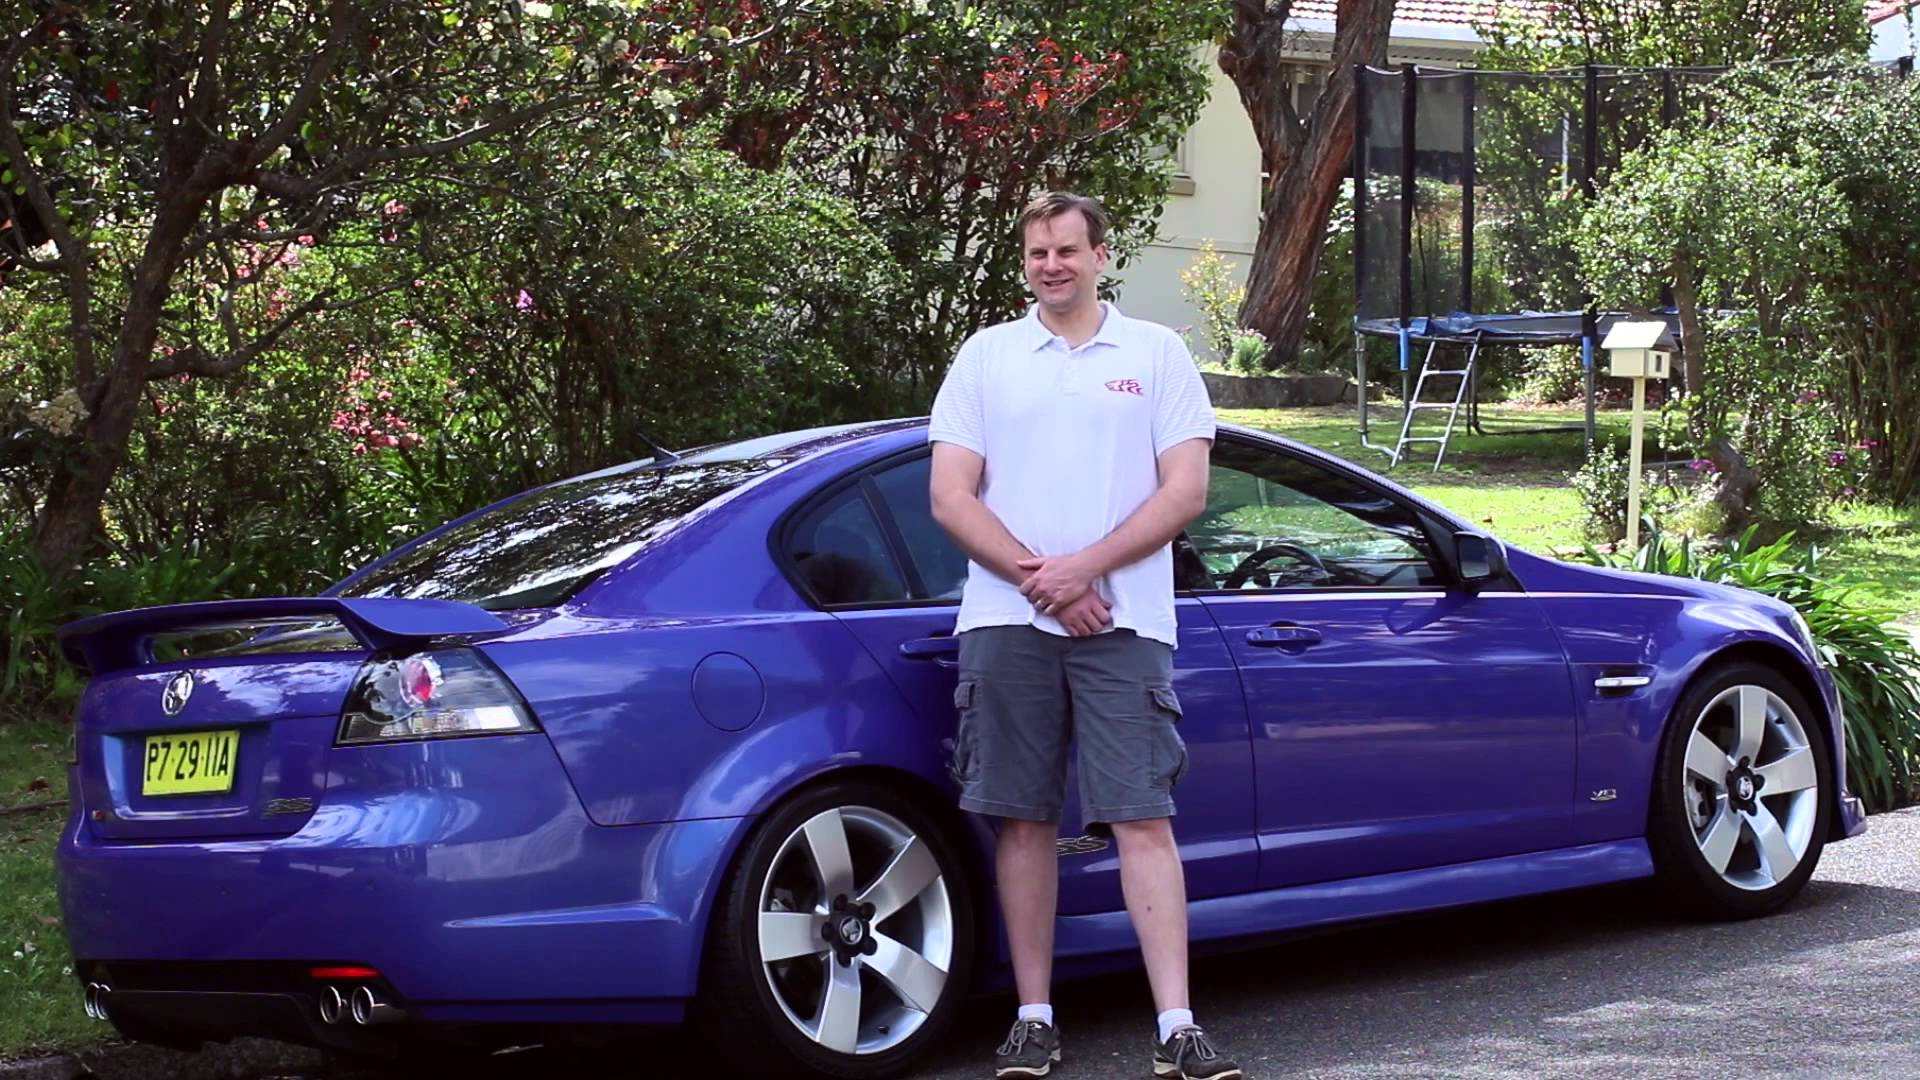 Insuring what you love: Brian and his Holden V8